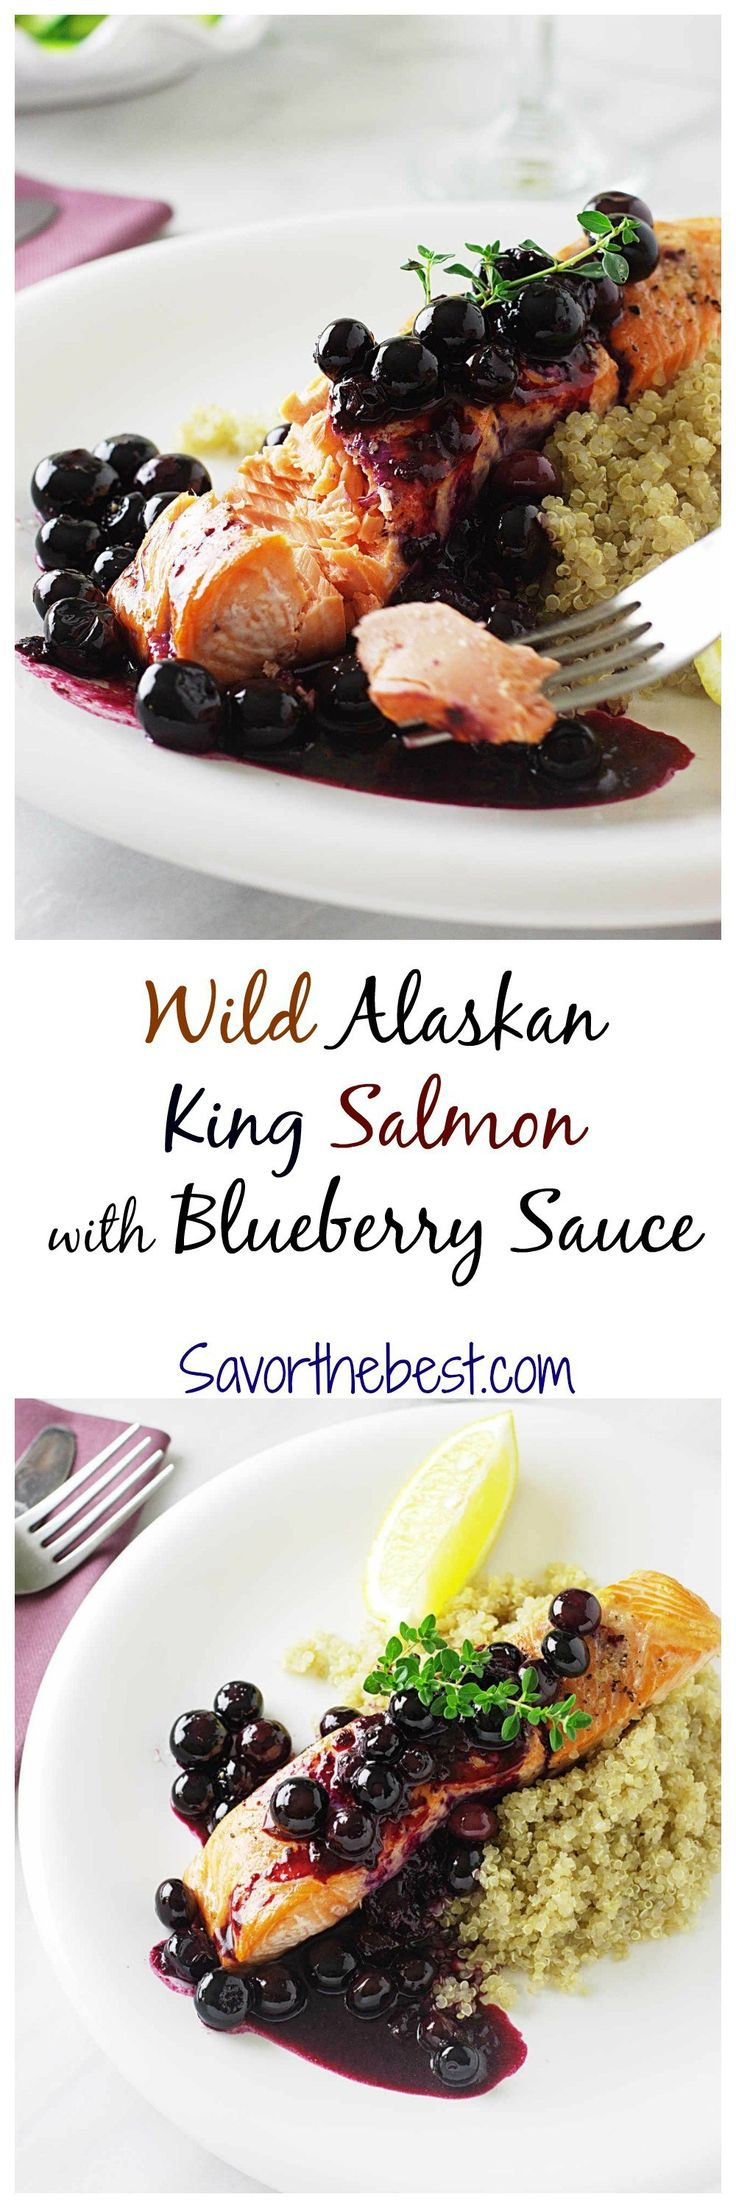 Wild Alaskan King Salmon with Blueberry Sauce